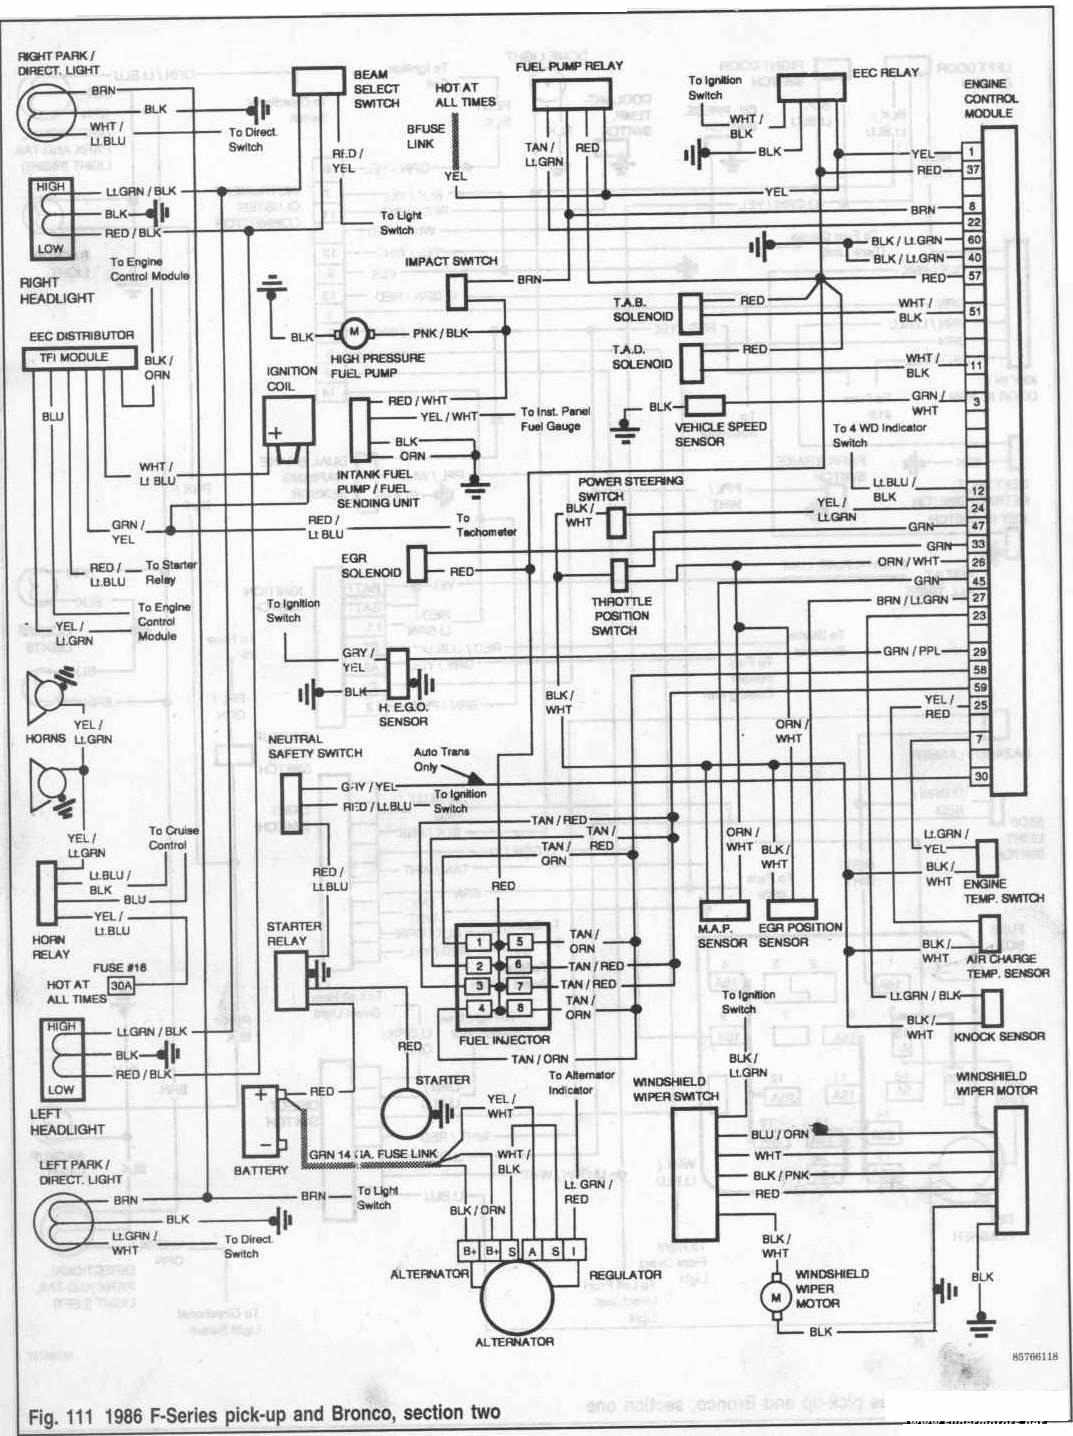 1969 mustang radio wiring diagram for nest thermostat uk 86 f350 fuse box library1990 ford bronco image details rh motogurumag com